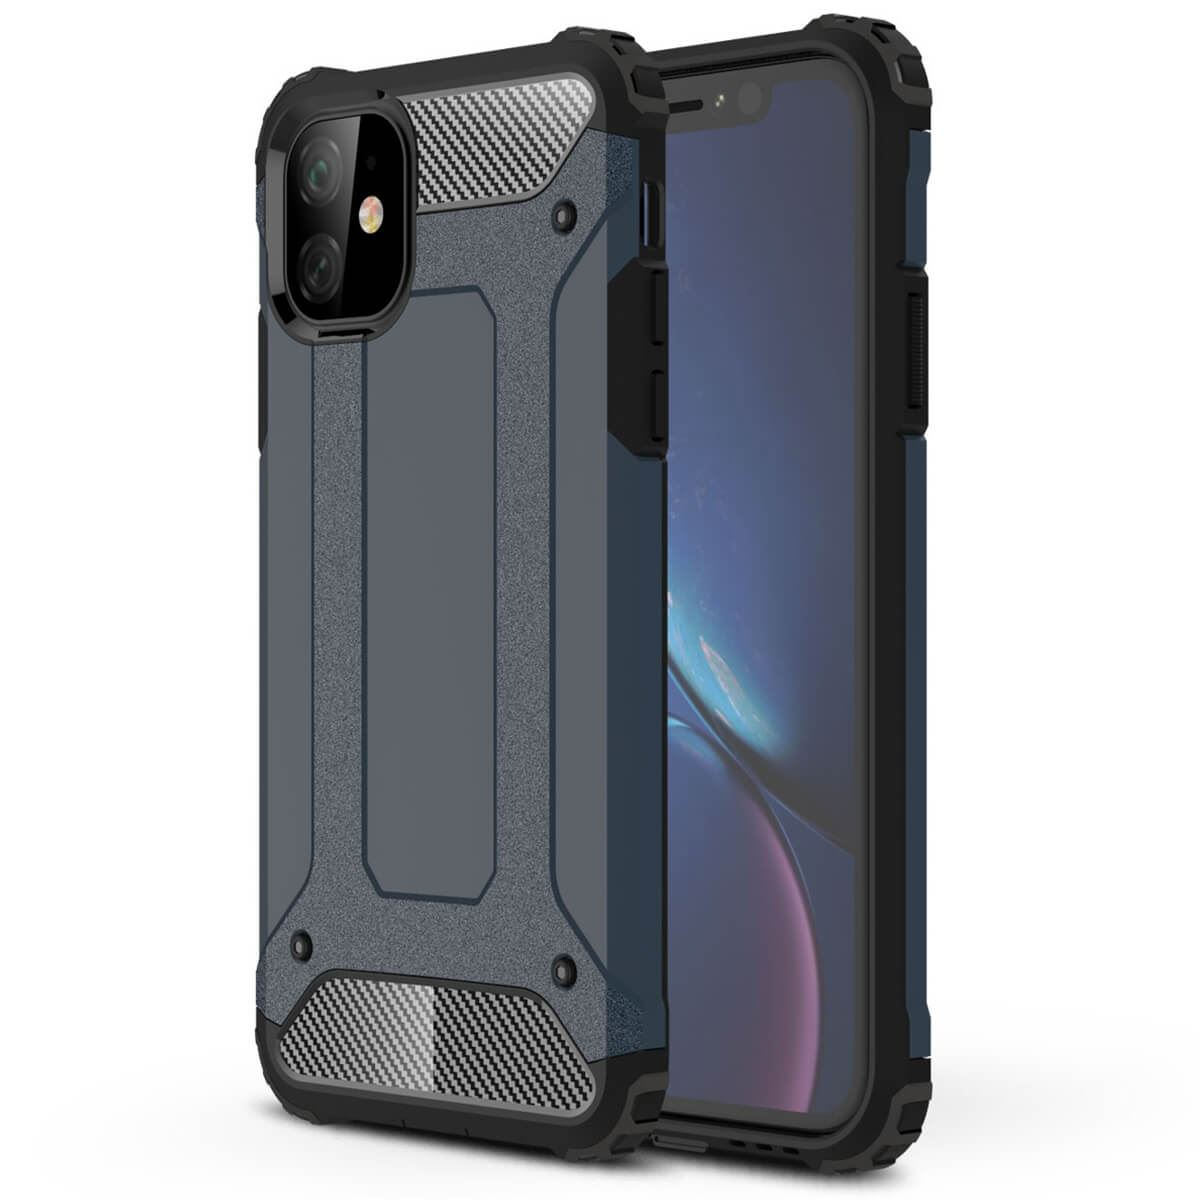 Shockproof-Bumper-Case-For-Apple-iPhone-10-X-8-7-Plus-6s-5s-Hybrid-Armor-Rugged thumbnail 17